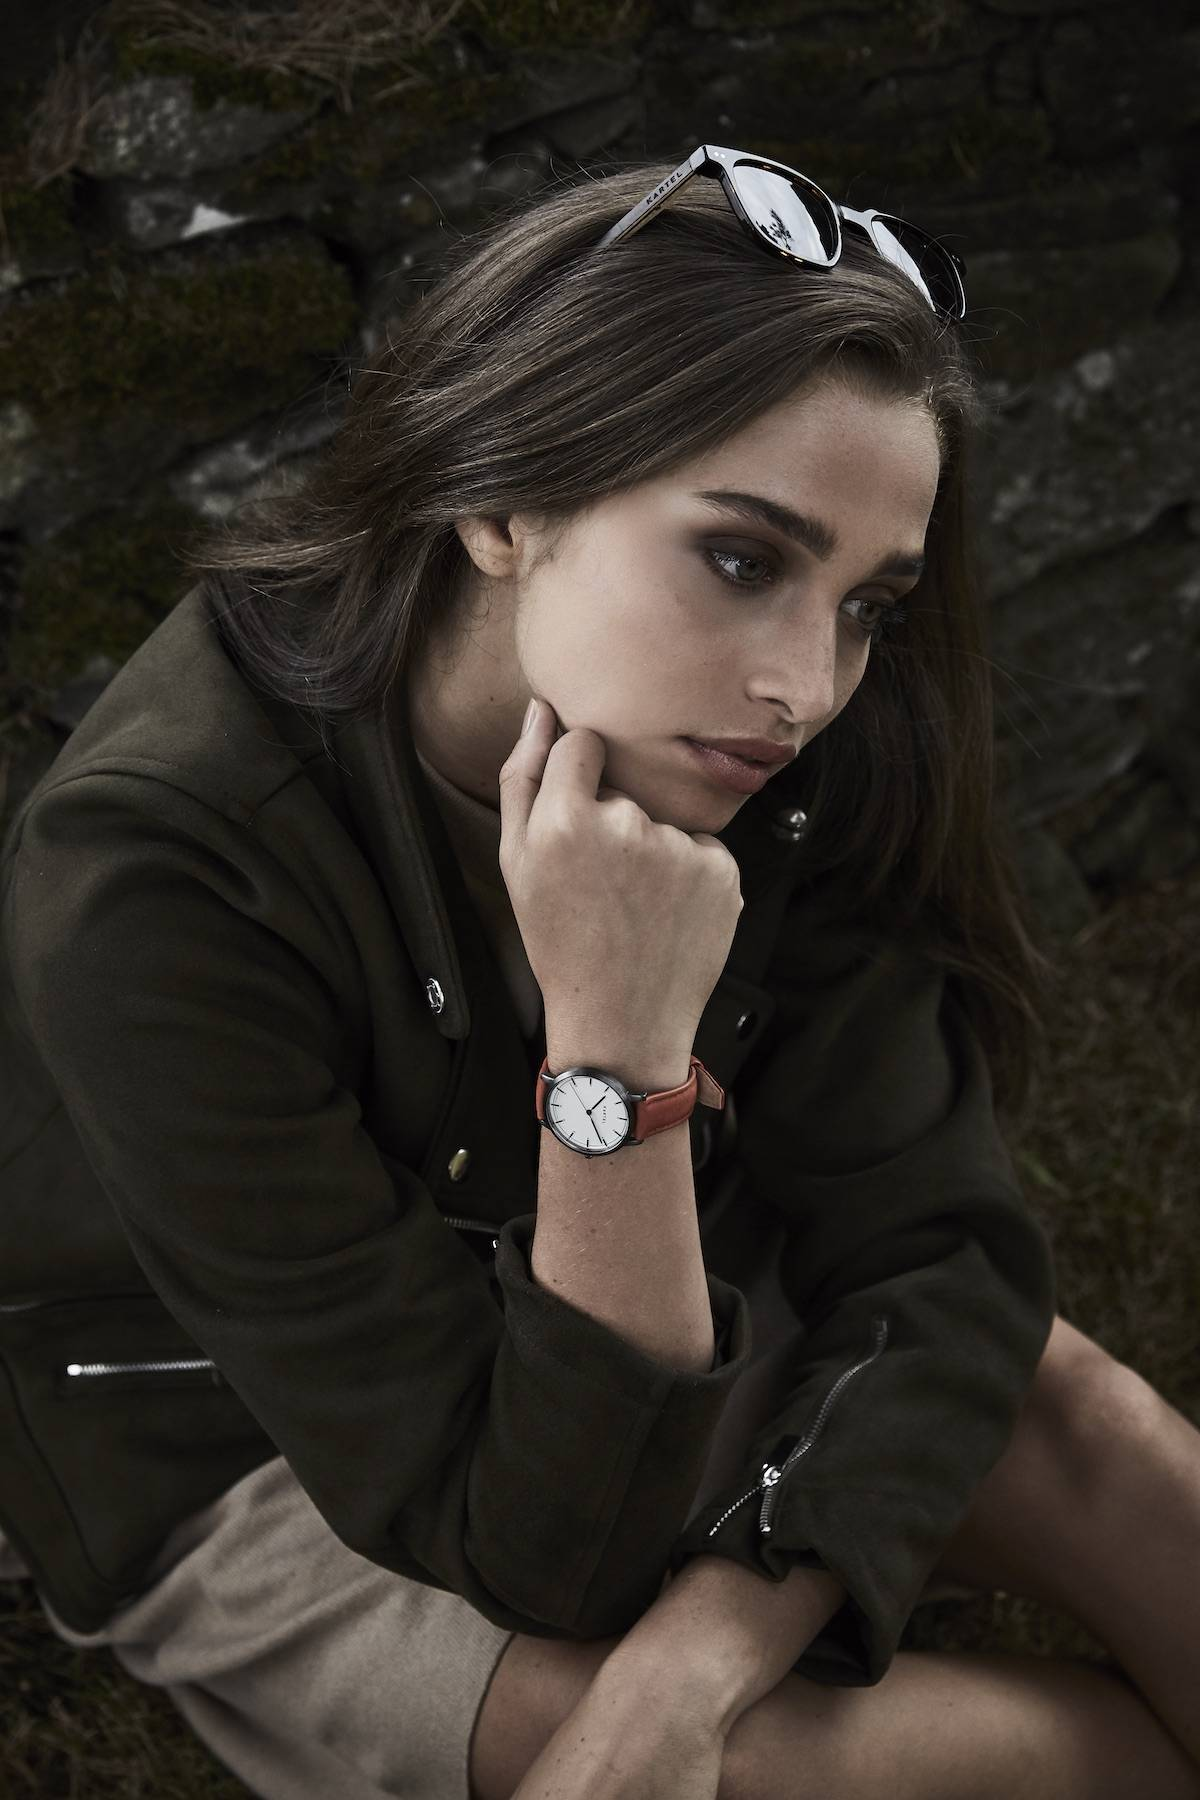 Scottish female model Talia Wallis for Kartel Scotland's A/W18 watch collection